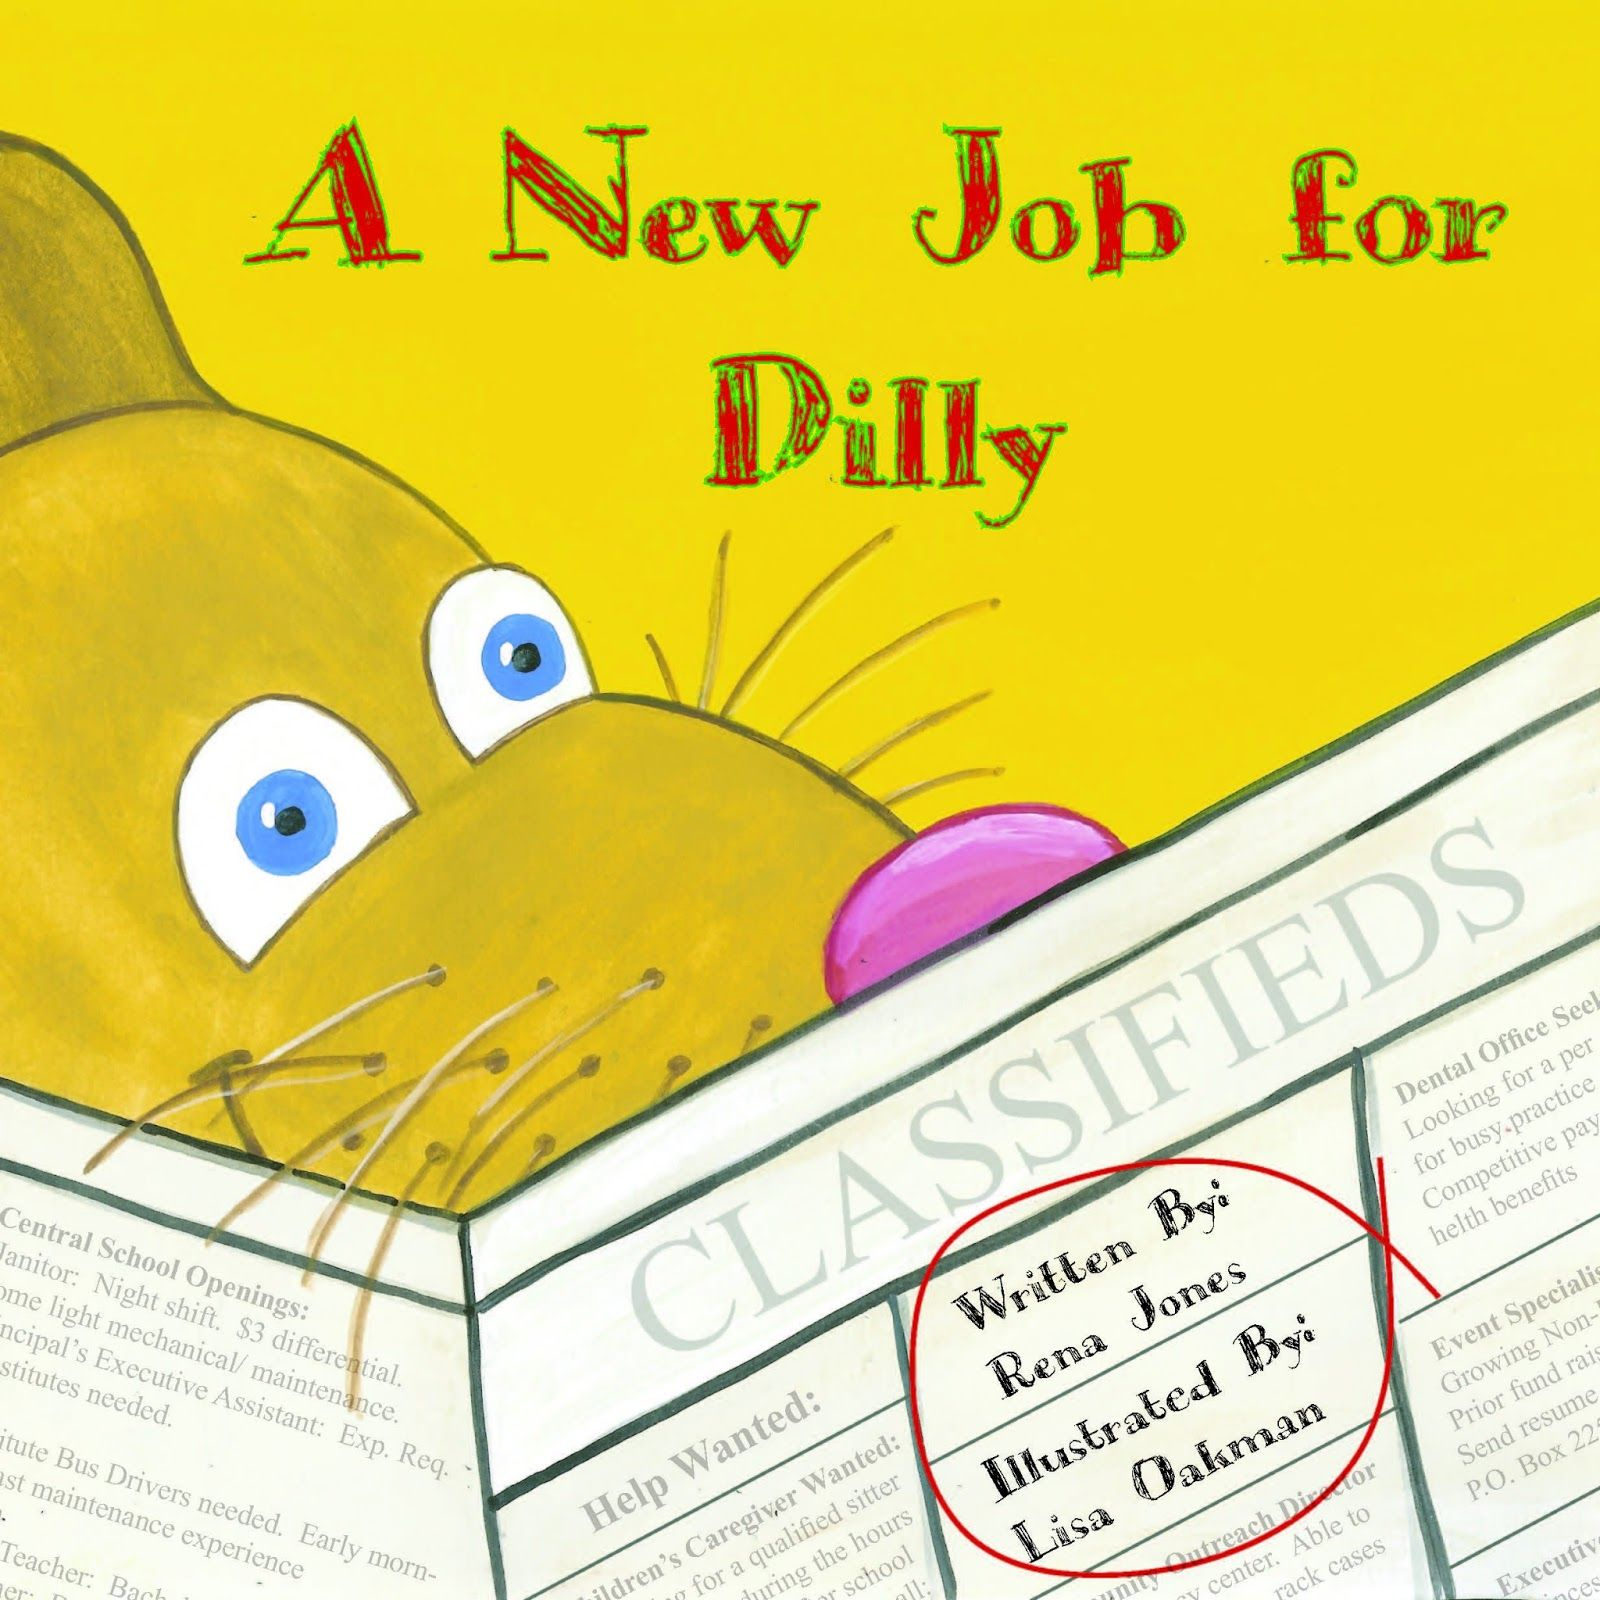 Dilly from A New Job For Dilly